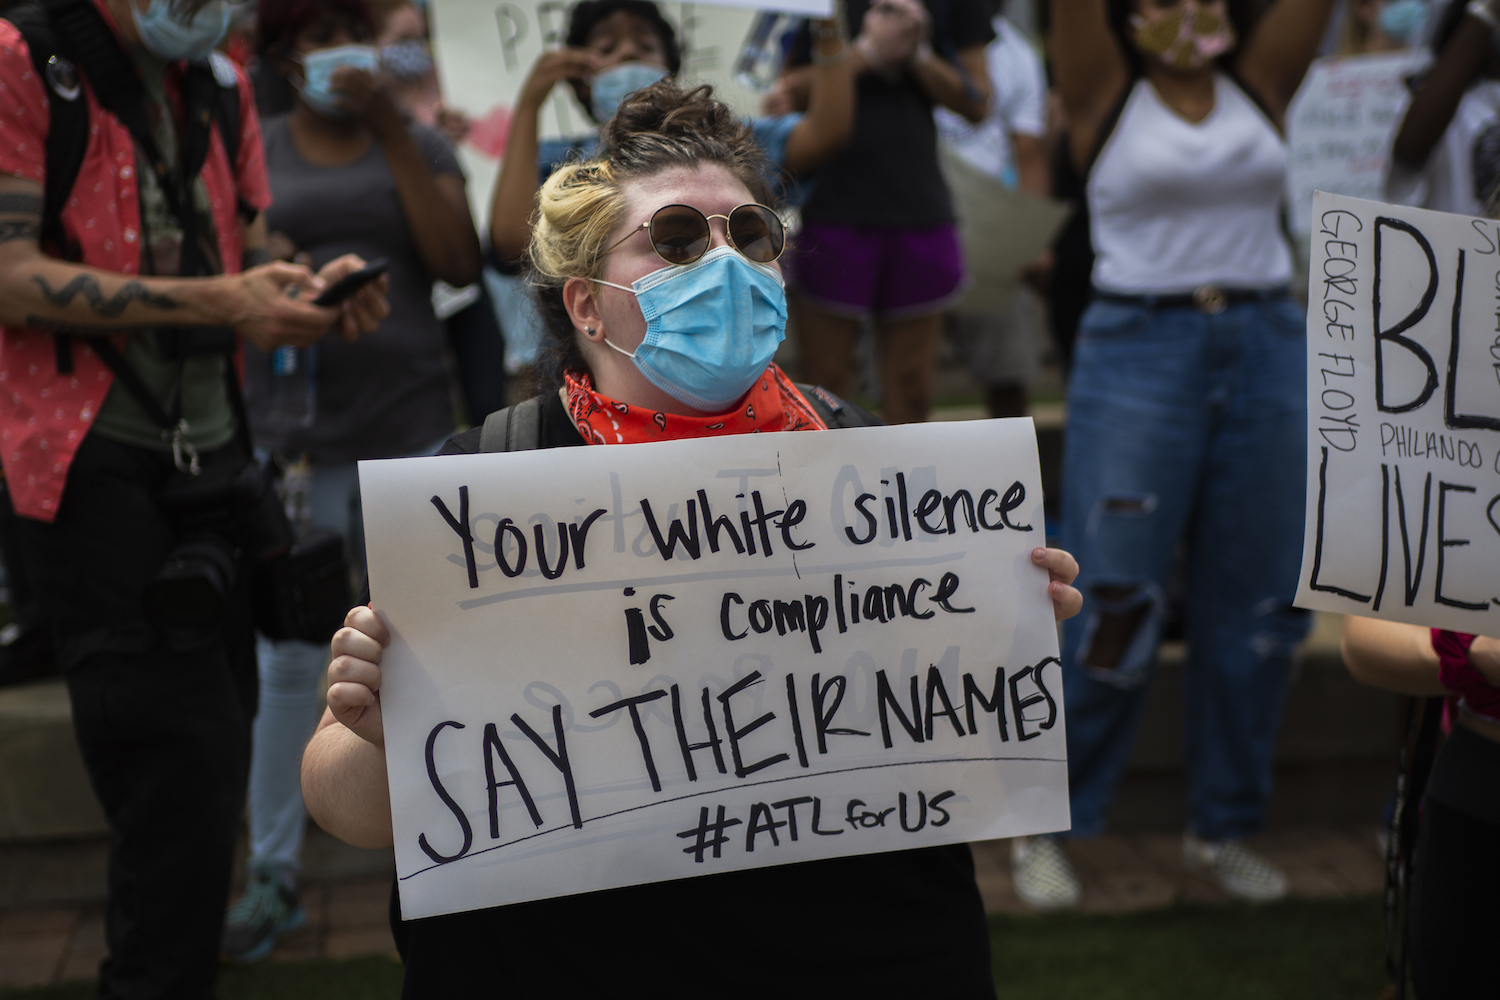 White_Silence_Compliance_Say_Their_Names_ATL